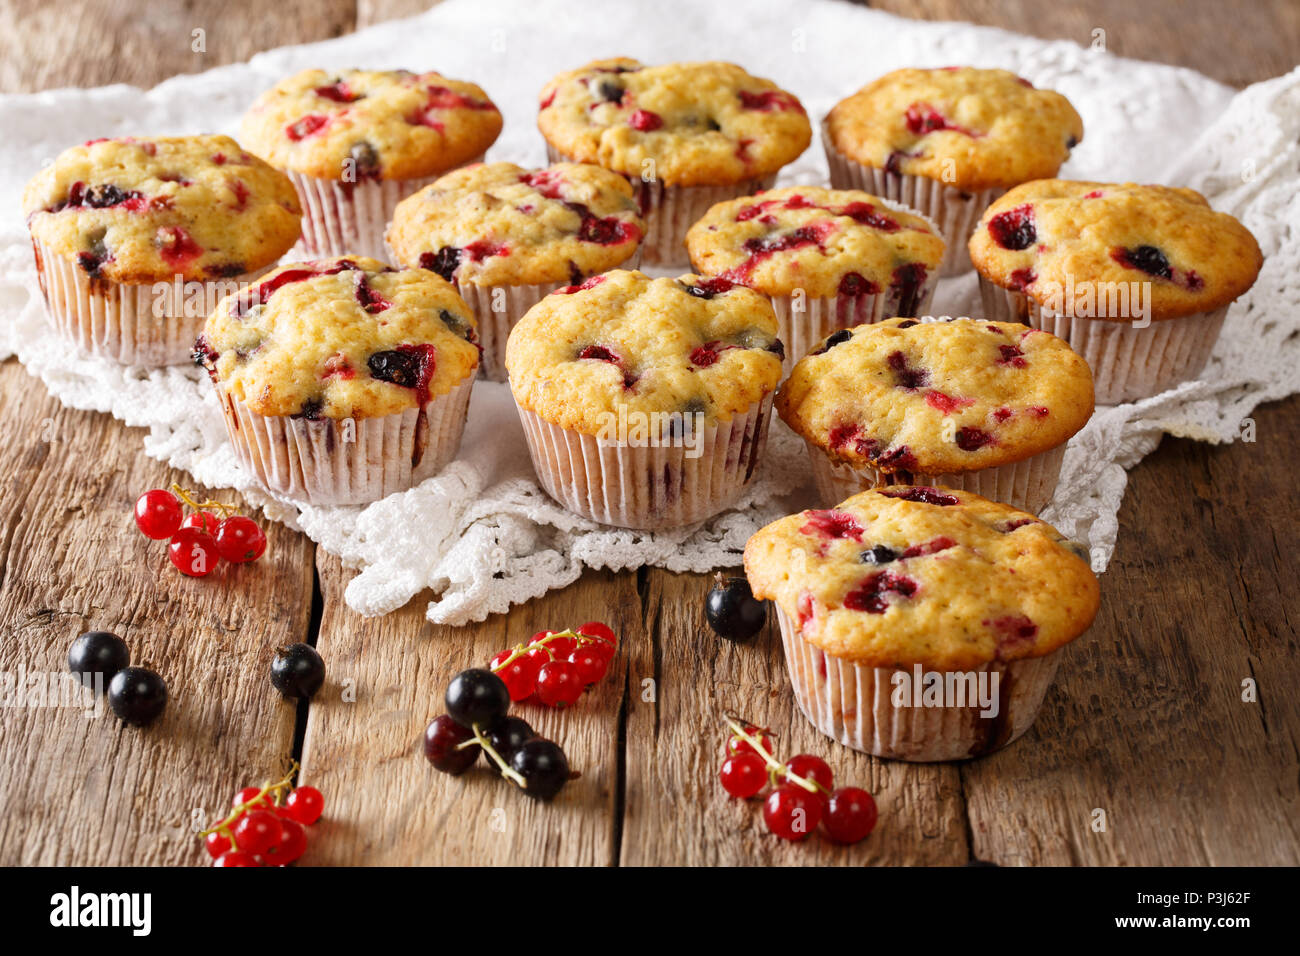 Freshly baked muffins with black and red currant berries close-up on the table. horizontal Stock Photo